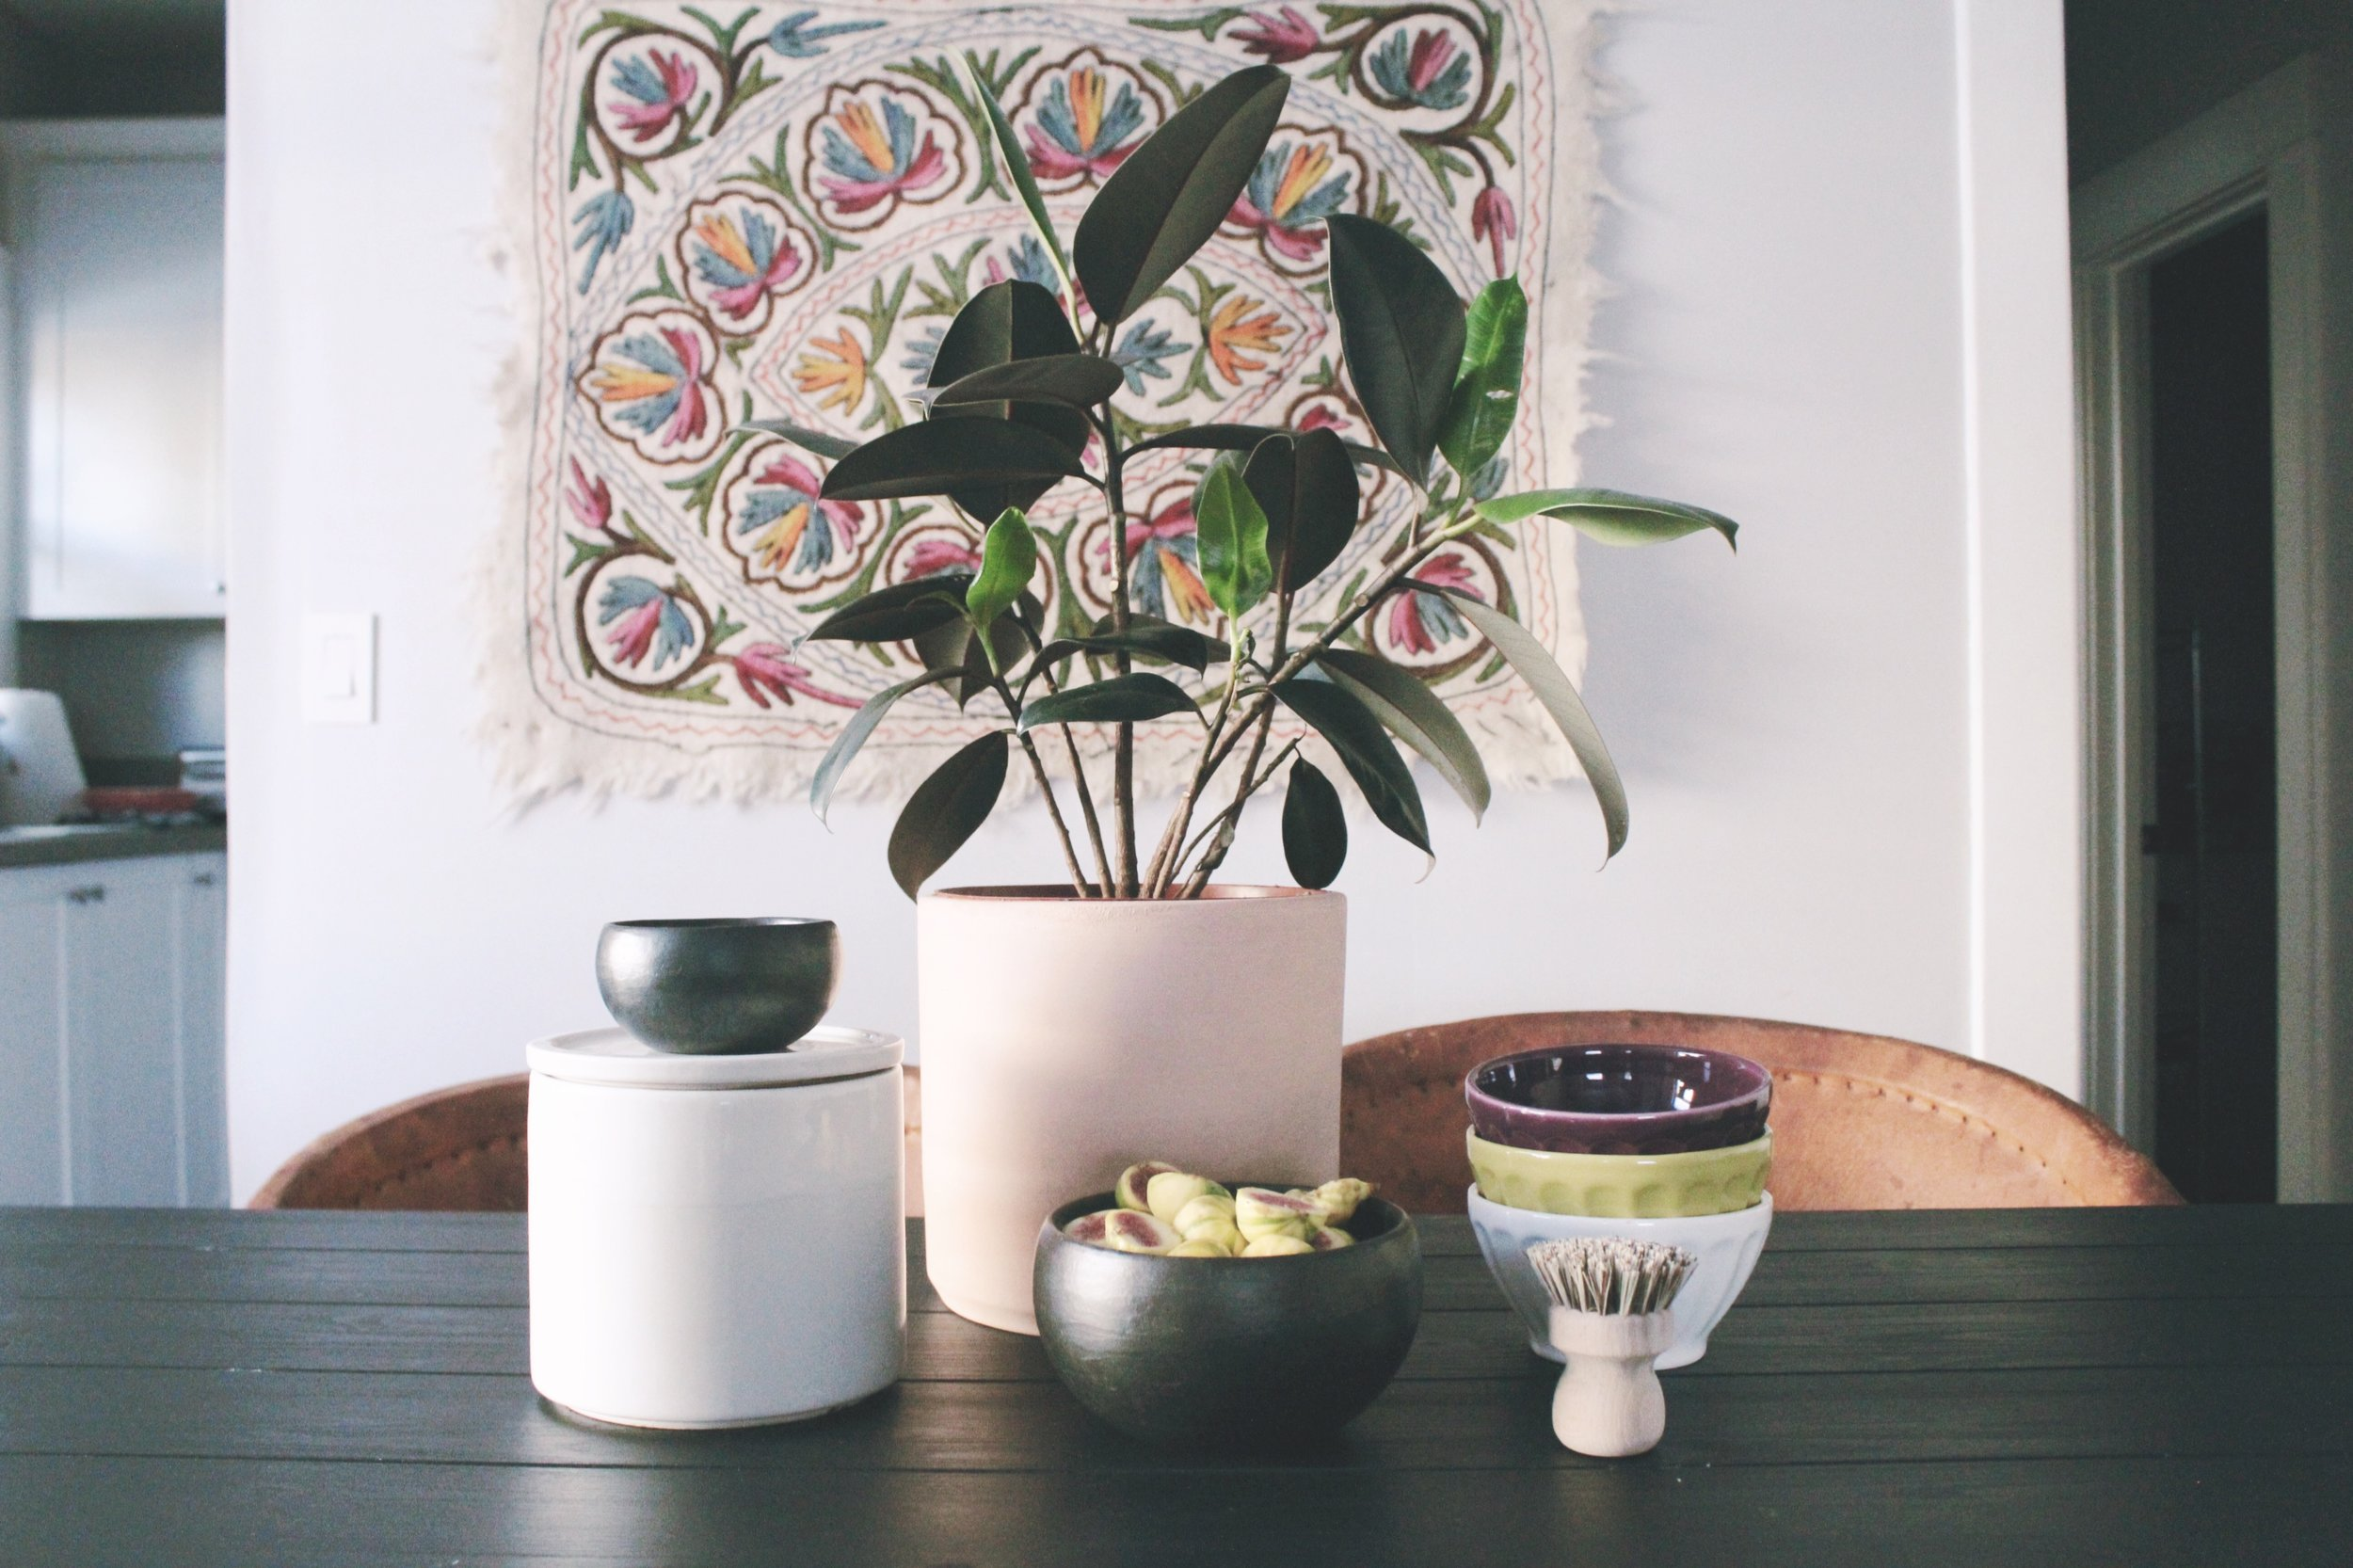 Photo c/o Found + Kept   R to L   Vintage Ceramic Coffee Canister   Peacock + Co Planter   Anthropologie Black Pasta Bowls   Anthropologie Latte Bowls  